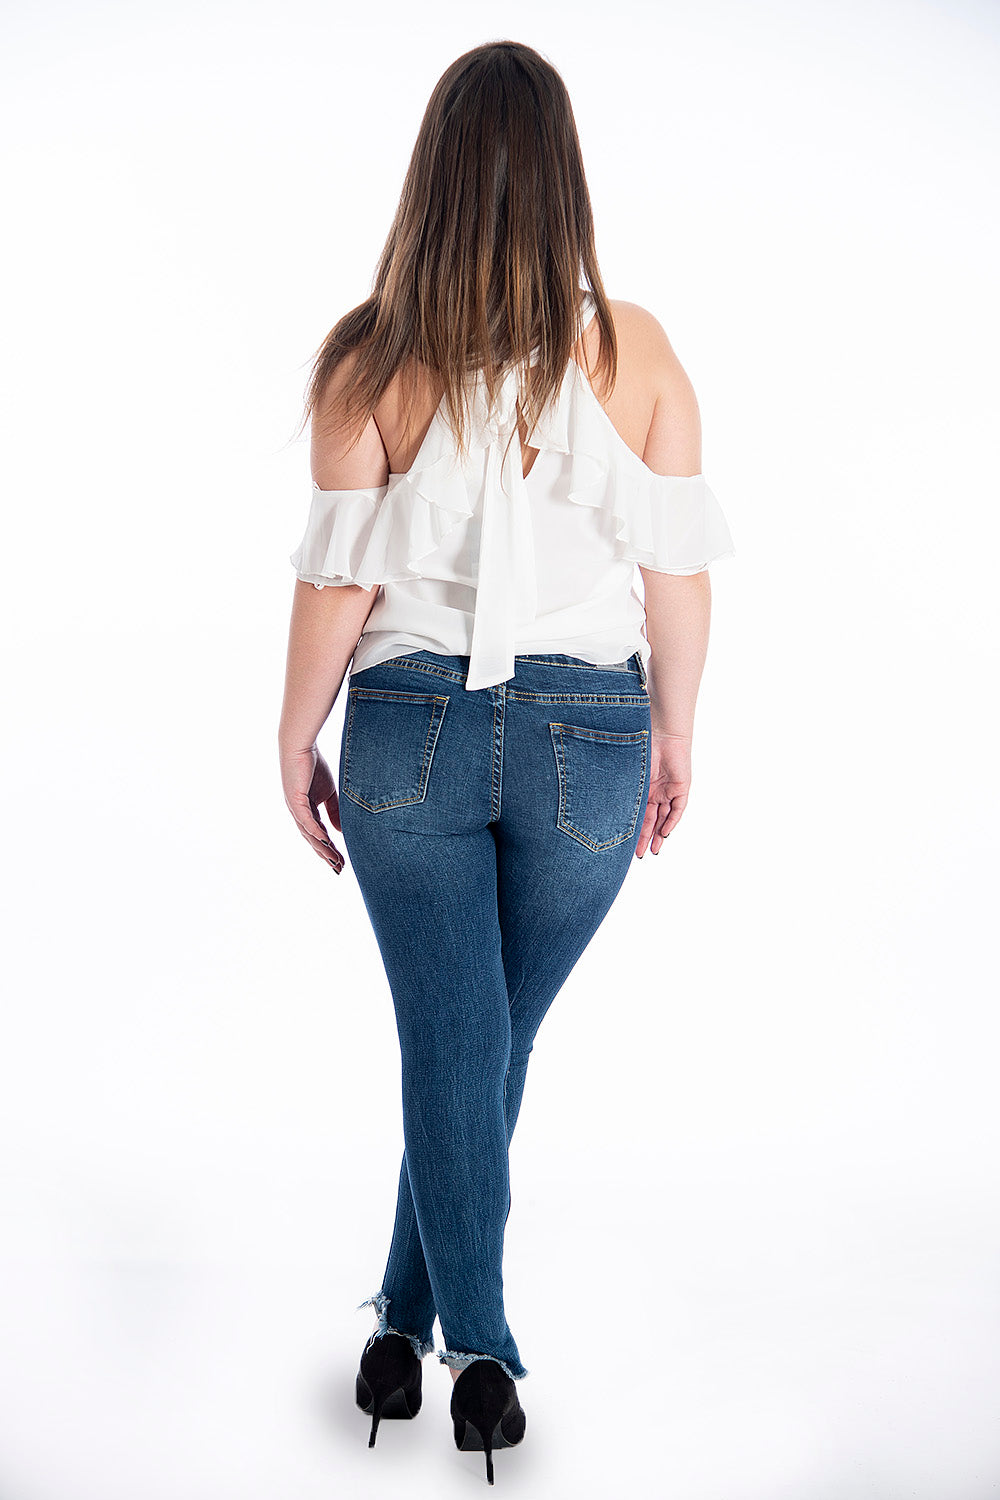 Goa Goa skinny jeans with vertical rip